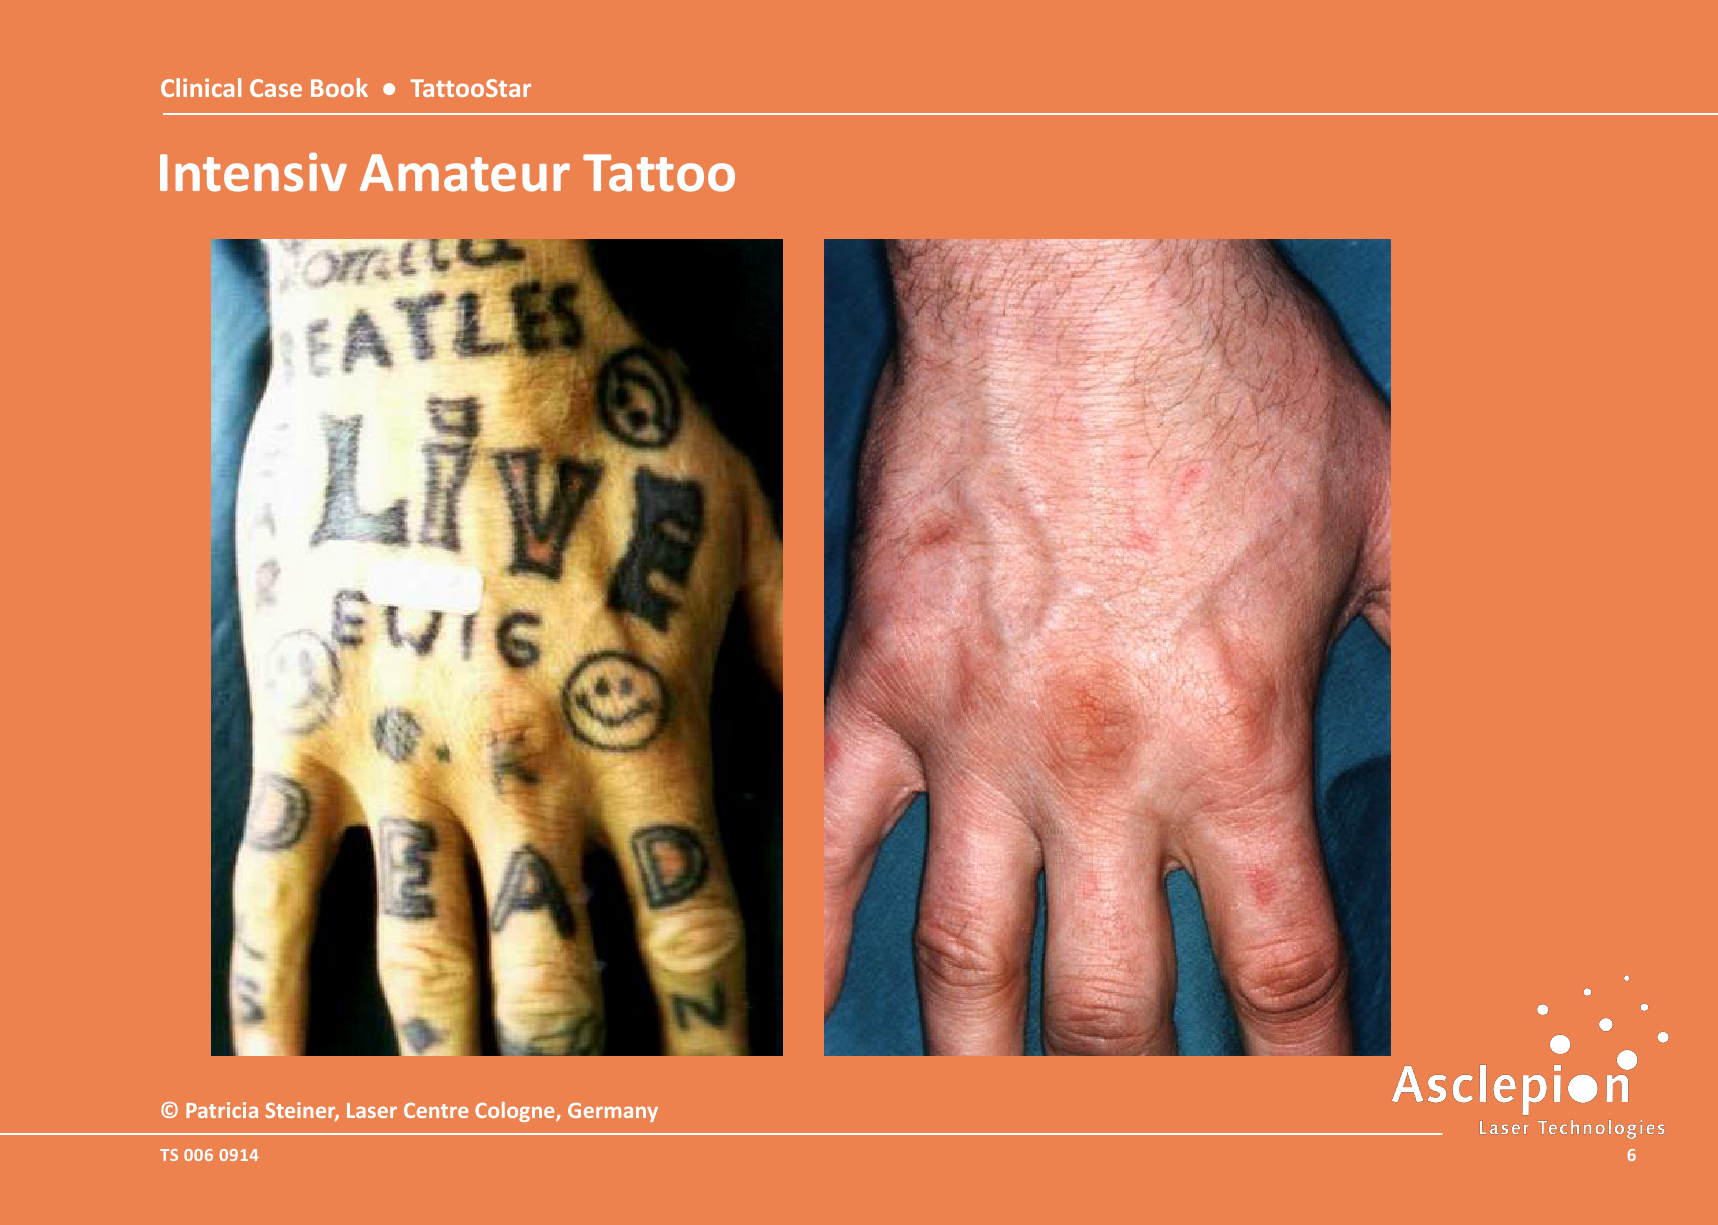 Clinical-Case-Book-2014-TattooStar_09146